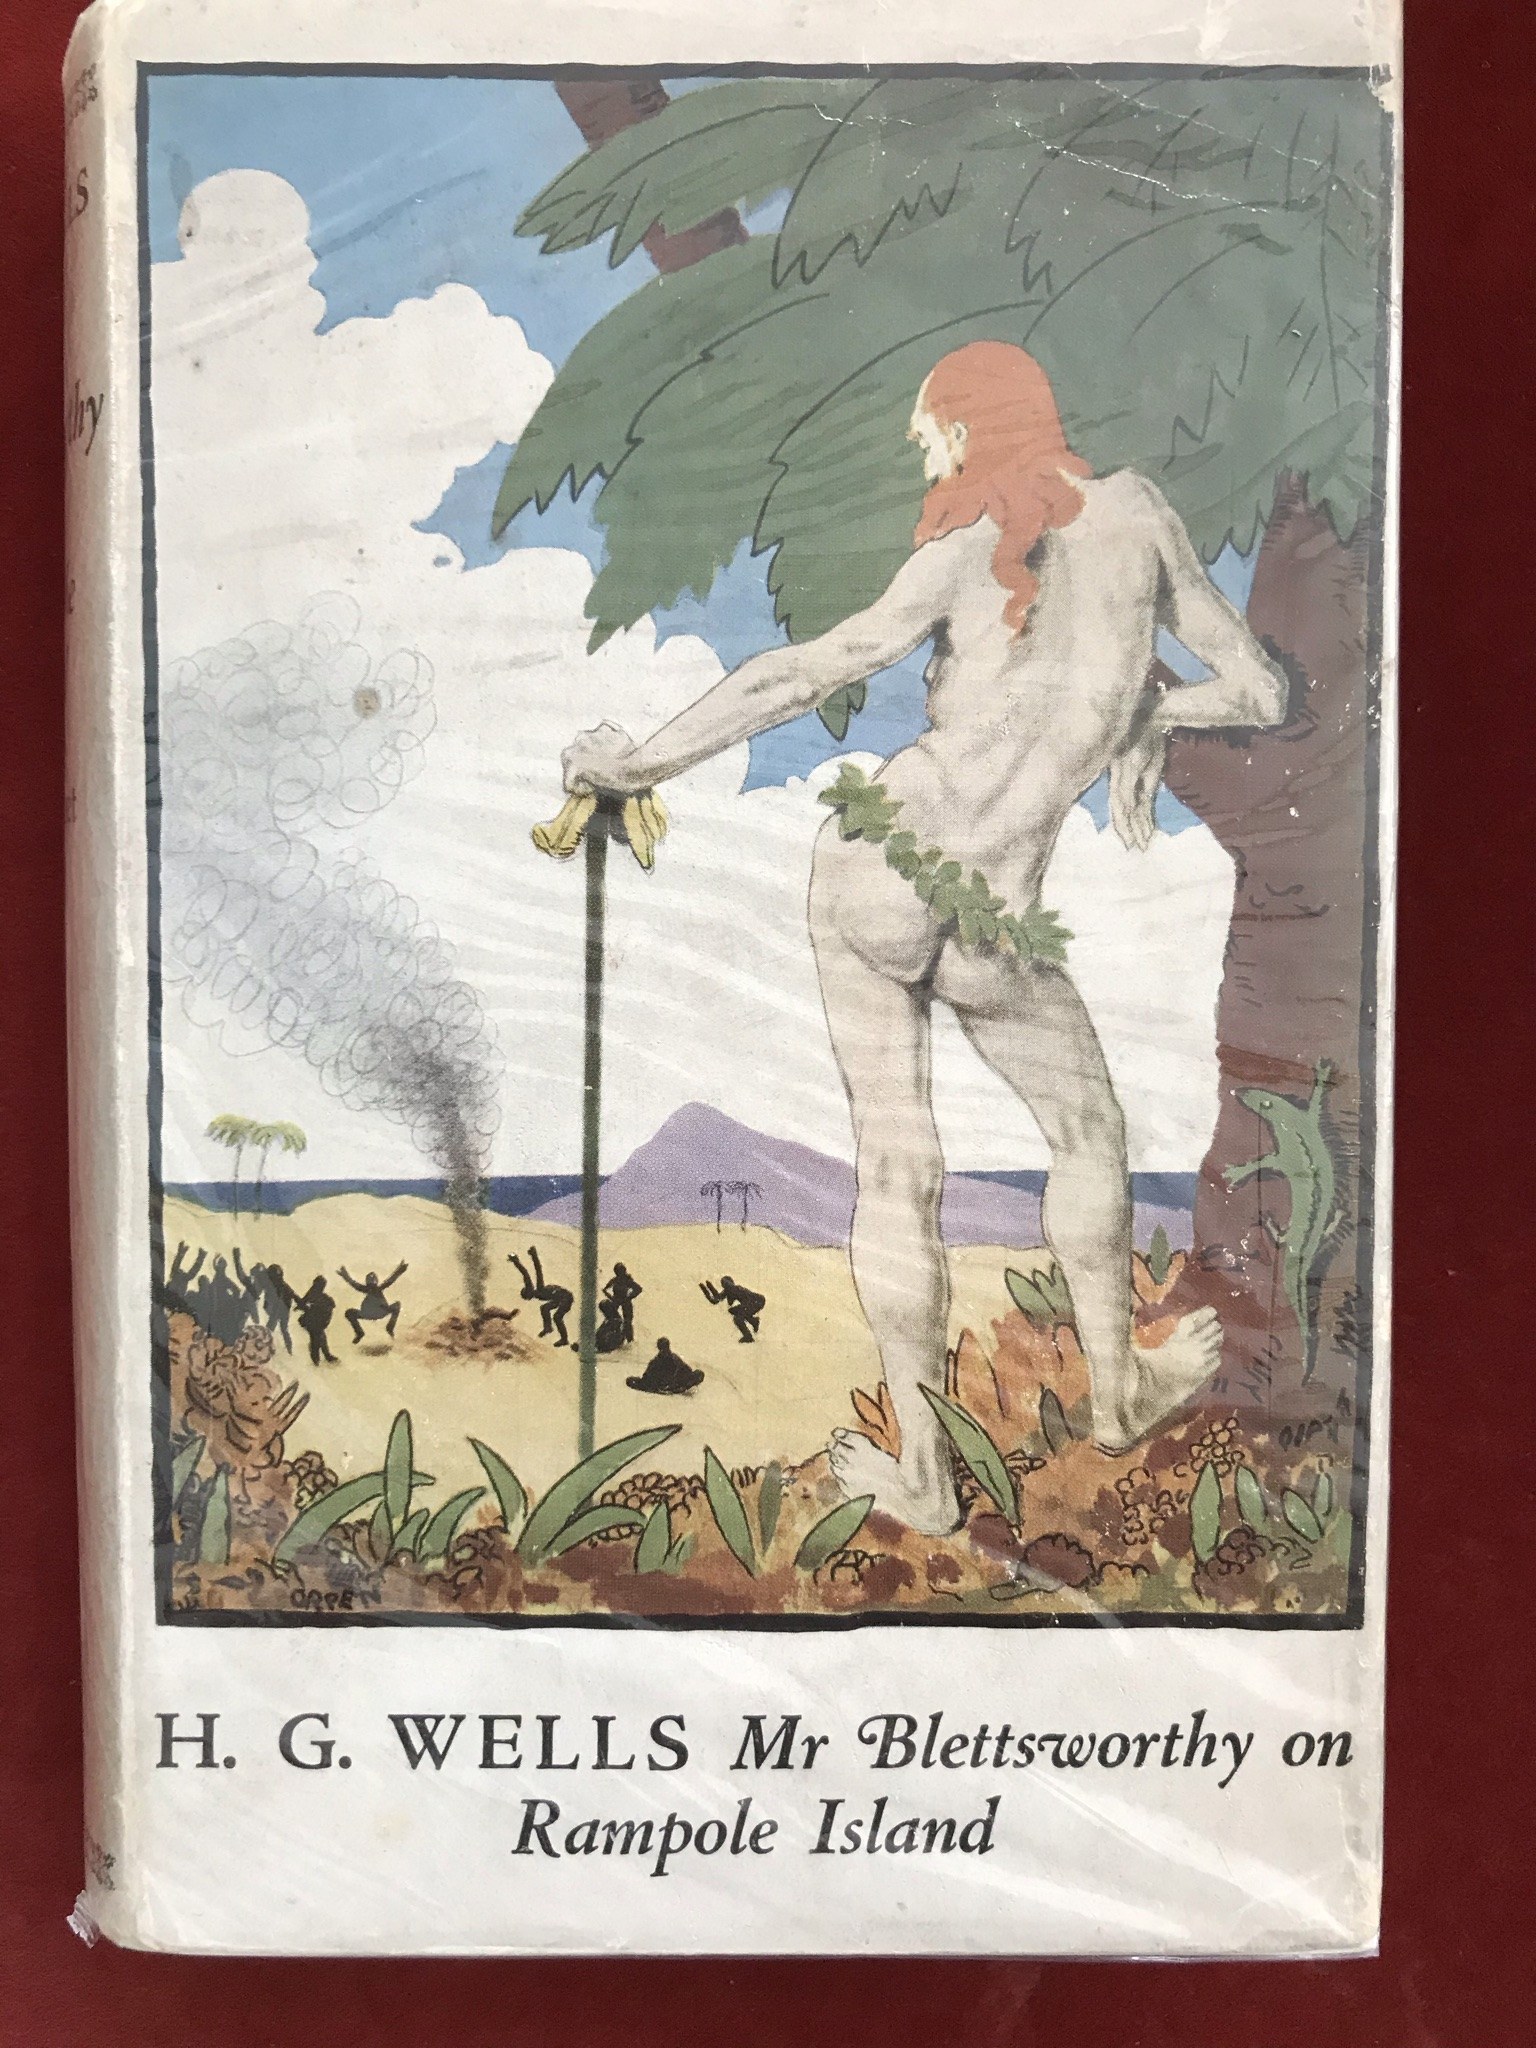 Mr. Blettsworthy on Rampole Island First edition with D/W, foxed edges, 1928